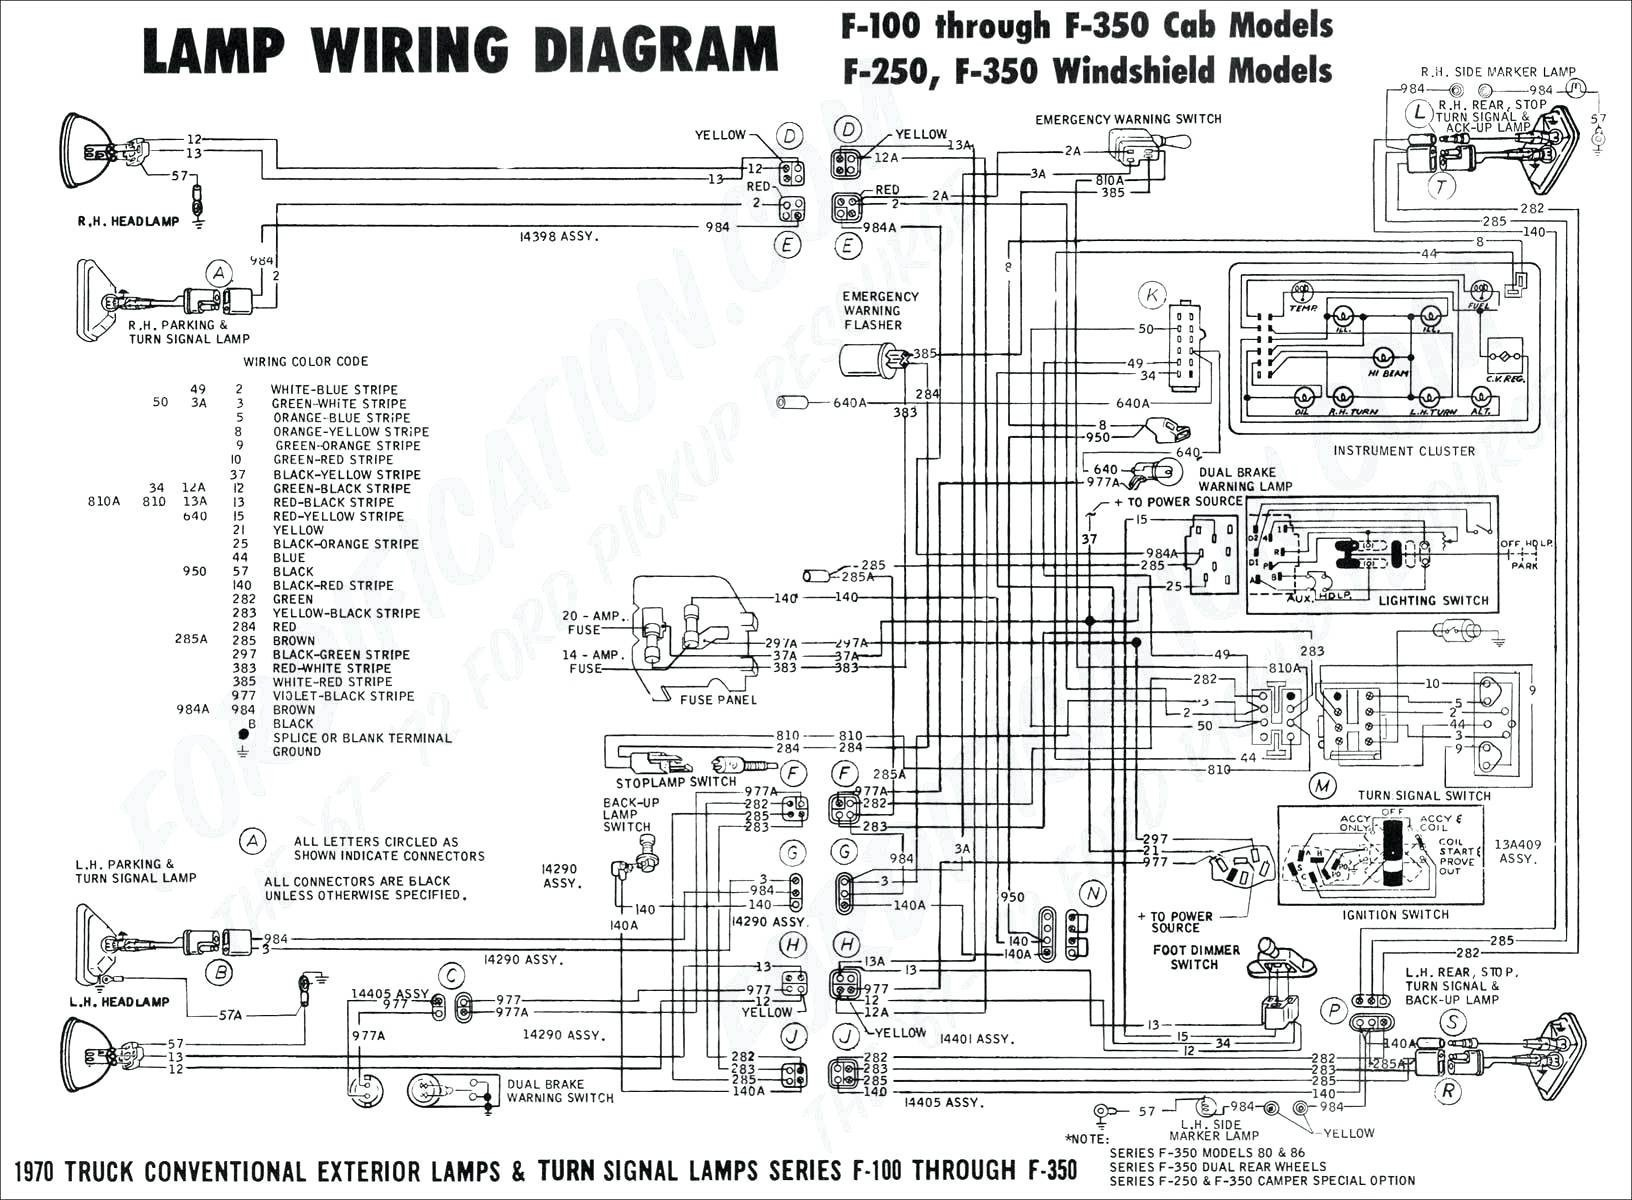 Wiring Photocell to Lighting Contactor Eaton atc 800 Wiring Diagram Contactor Wiring Diagram A1 A2 Of Wiring Photocell to Lighting Contactor F62dca3 tork Lighting Contactor Wiring Diagram